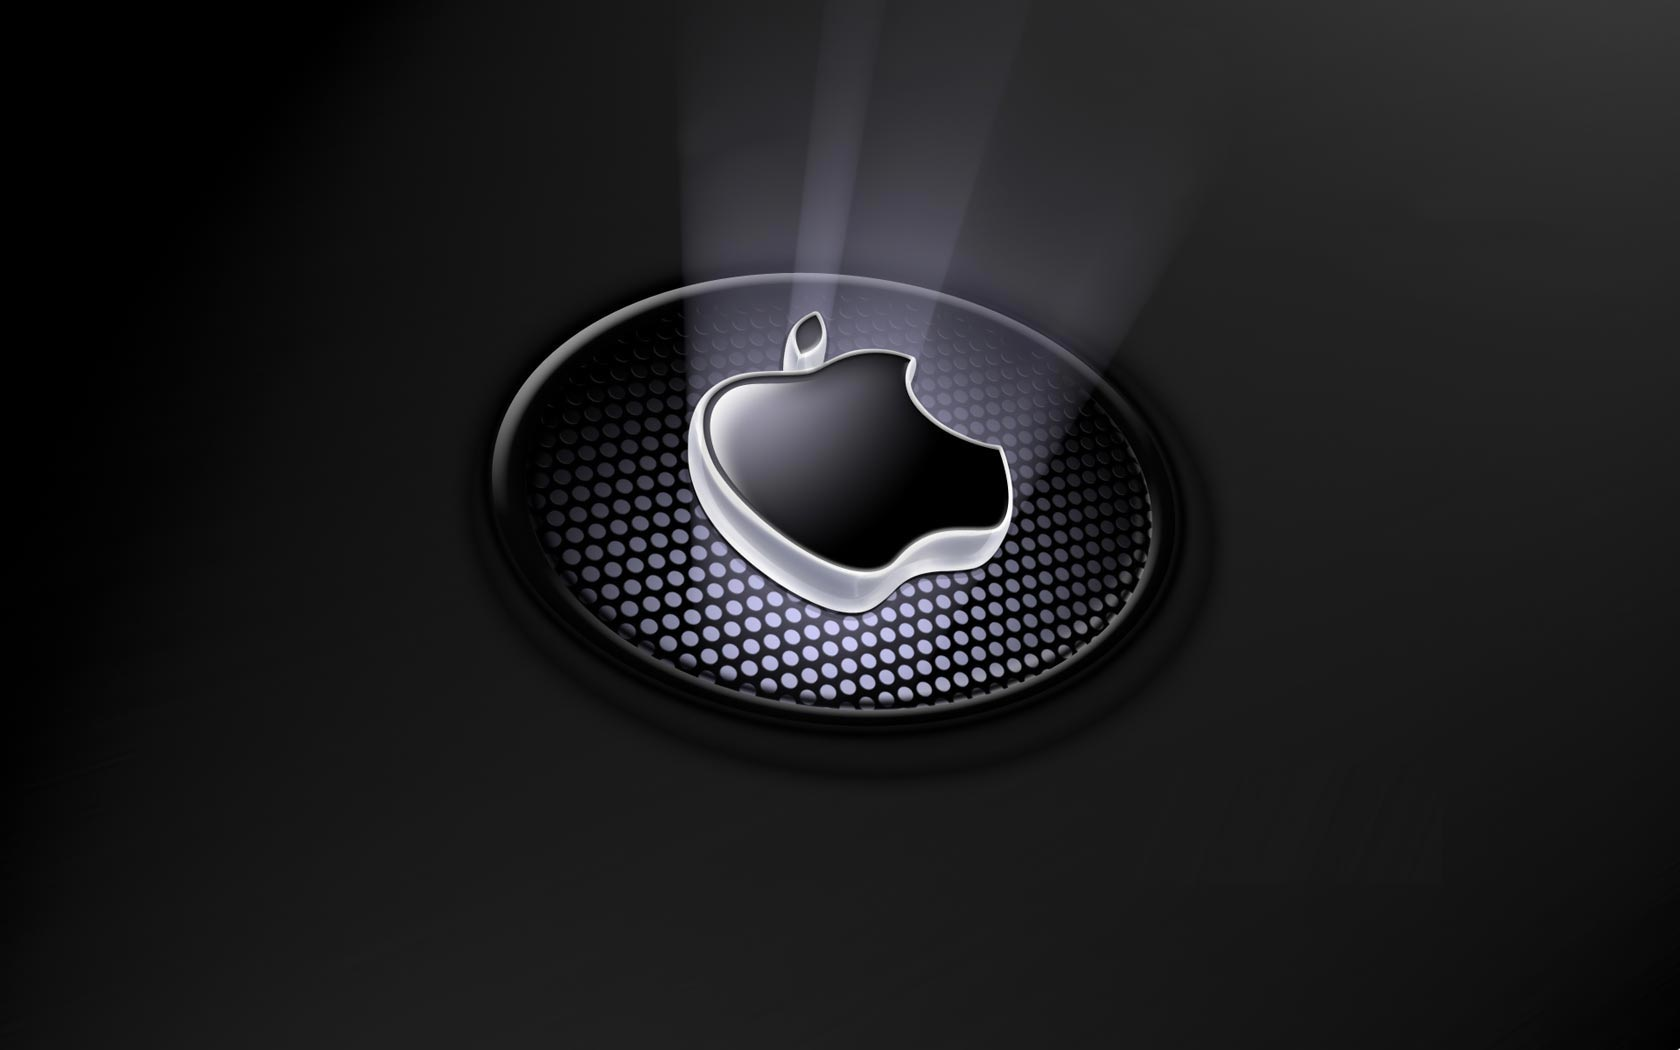 Apple logo backgrounds hd Wallpaper and make this wallpaper for your 1680x1050